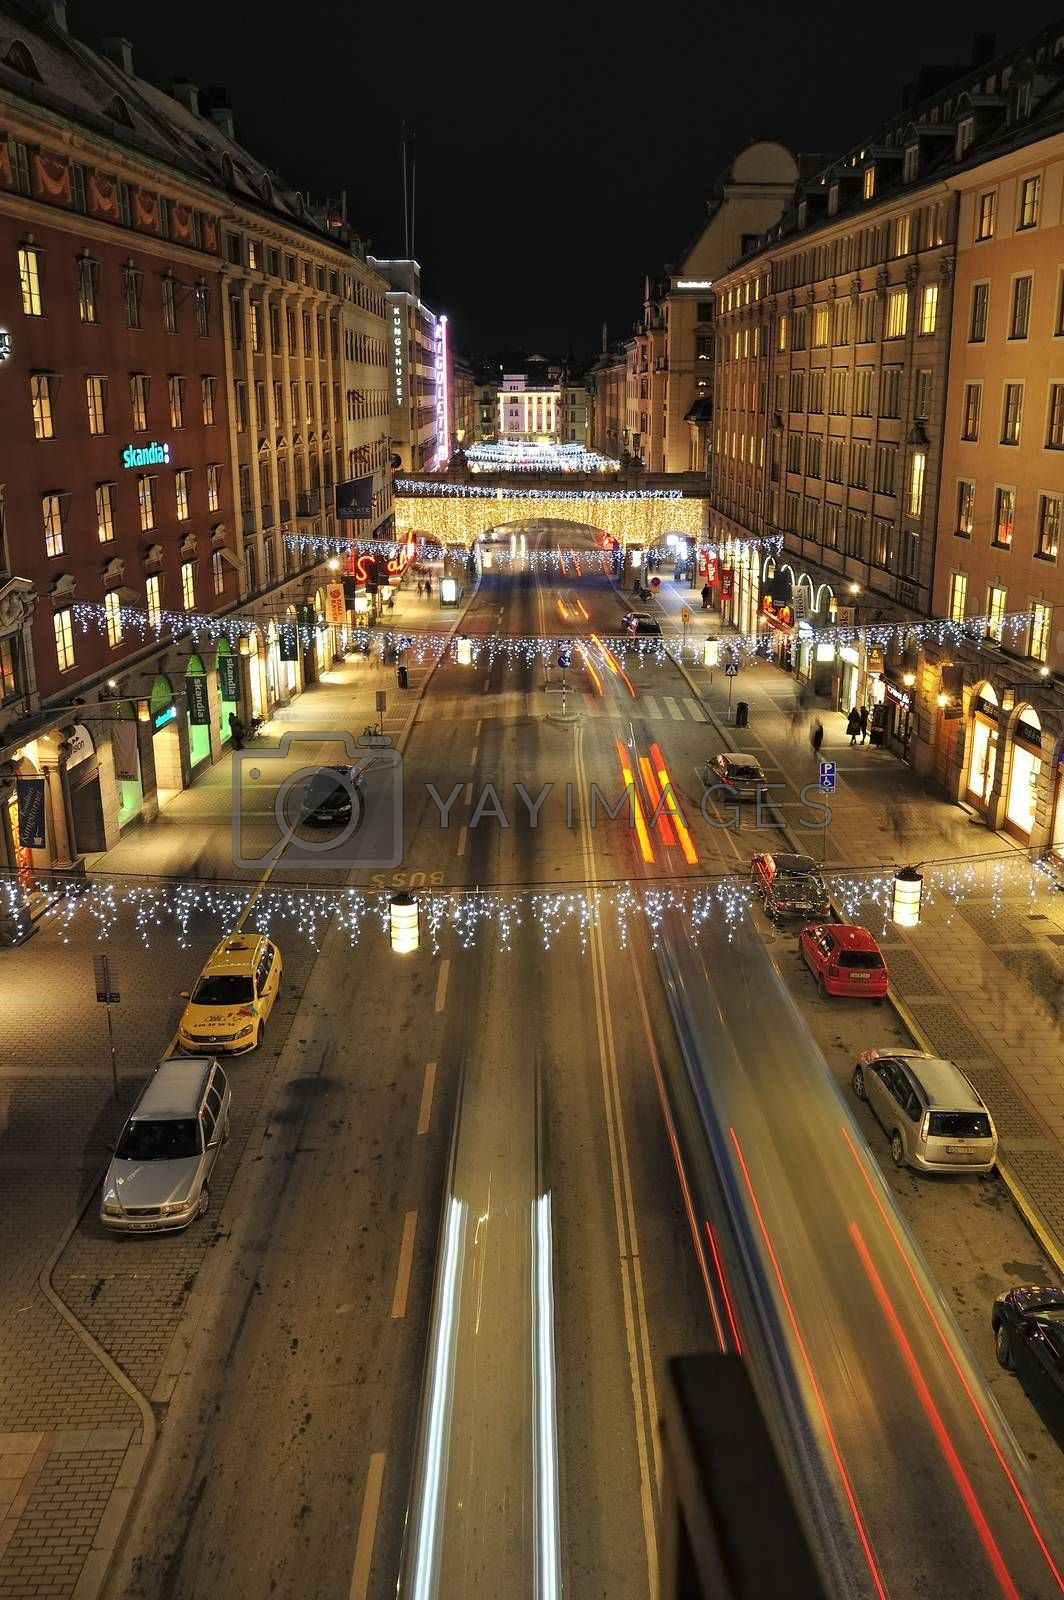 Night traffic on Kungsgatan in central Stockholm. Cars, pedestrians, taxis in traffic close to the crossing with Sveavagen